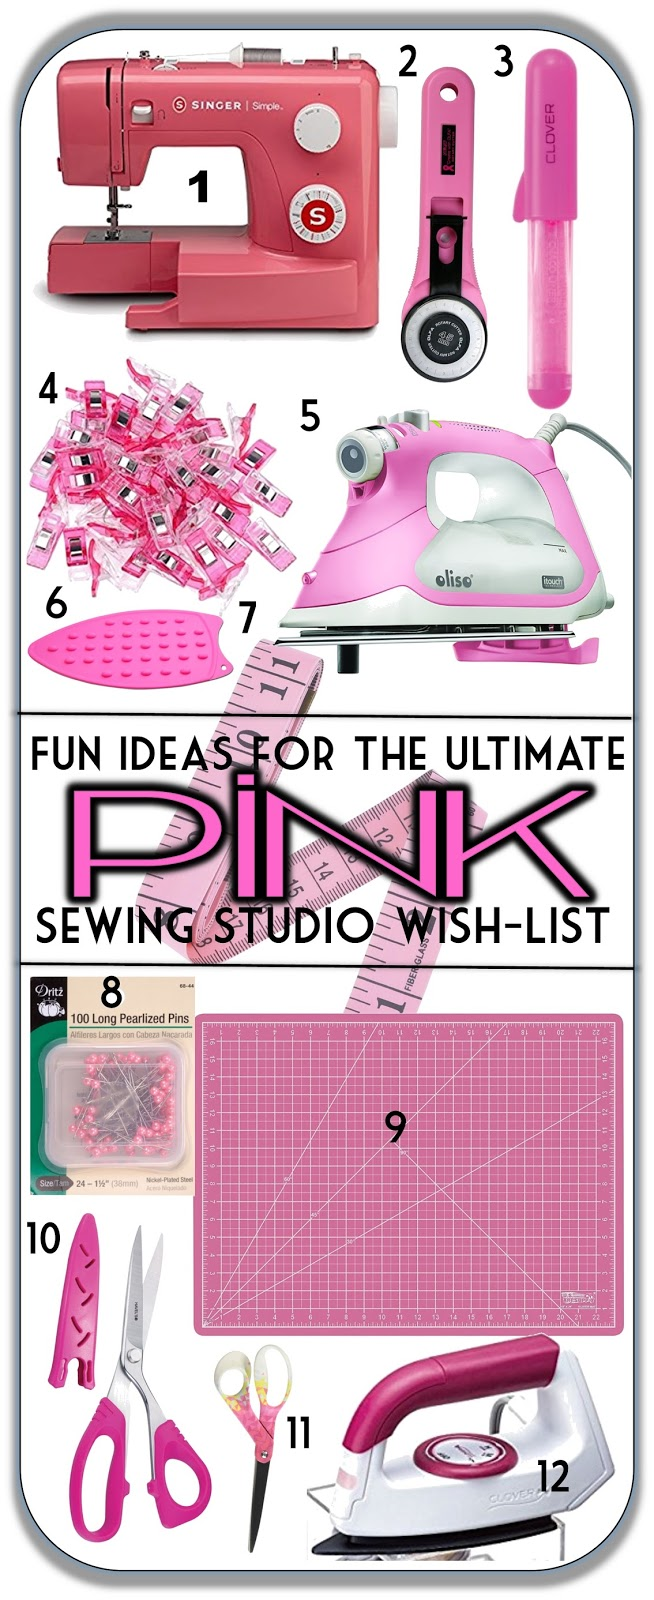 Pink-themed gift ideas for sewing enthusiasts and quilters, colorful sewing gadgets, irons, cutting mats. Stocking stuffer ideas for women? || Sew at Home Mummy